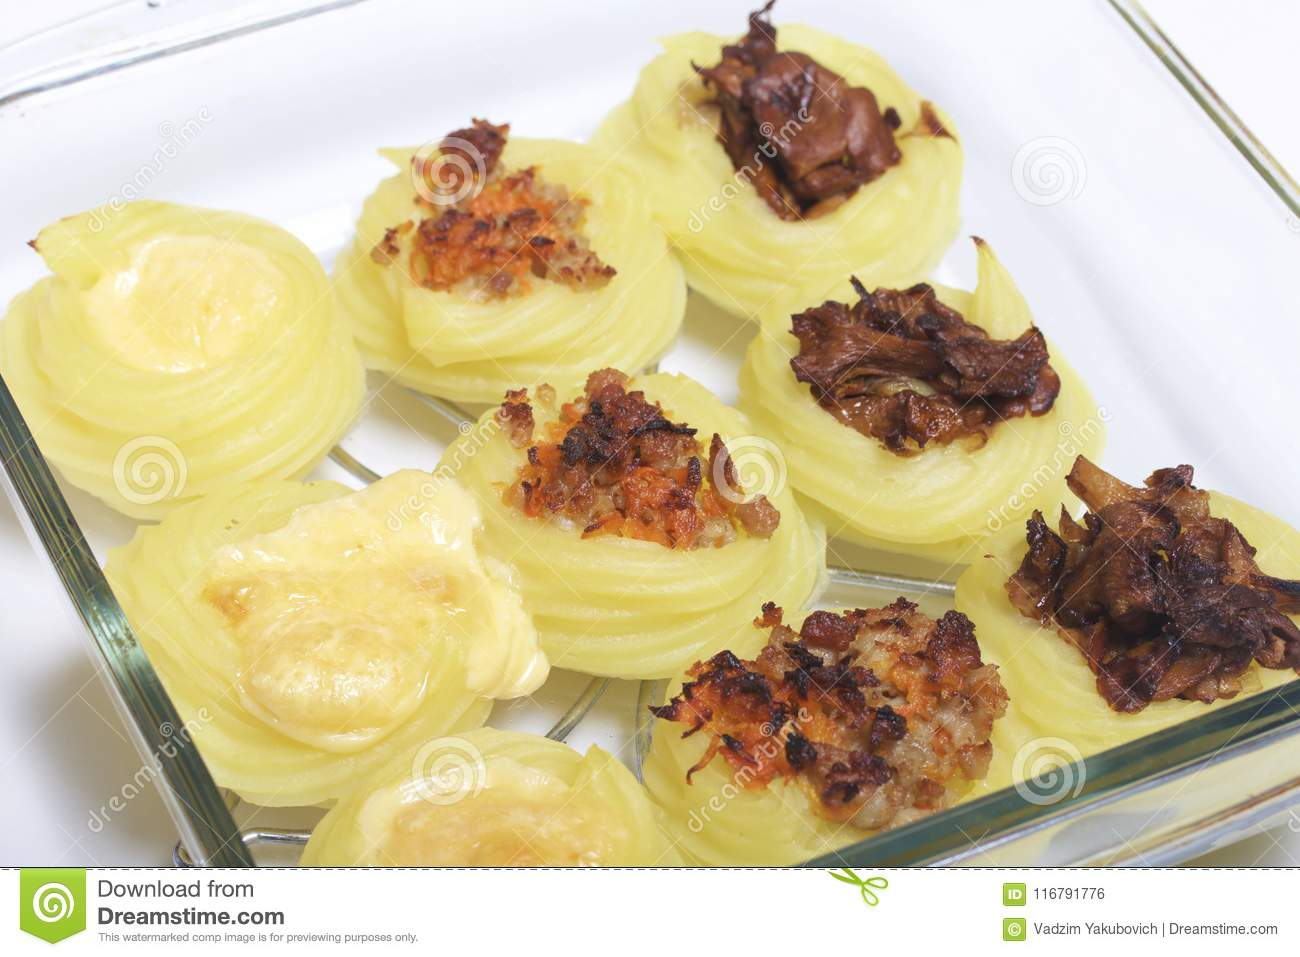 Cooked potato croquettes stuffed with cheese, mushrooms and minced meat. They lay in a glass baking sheet. The ingredients are on